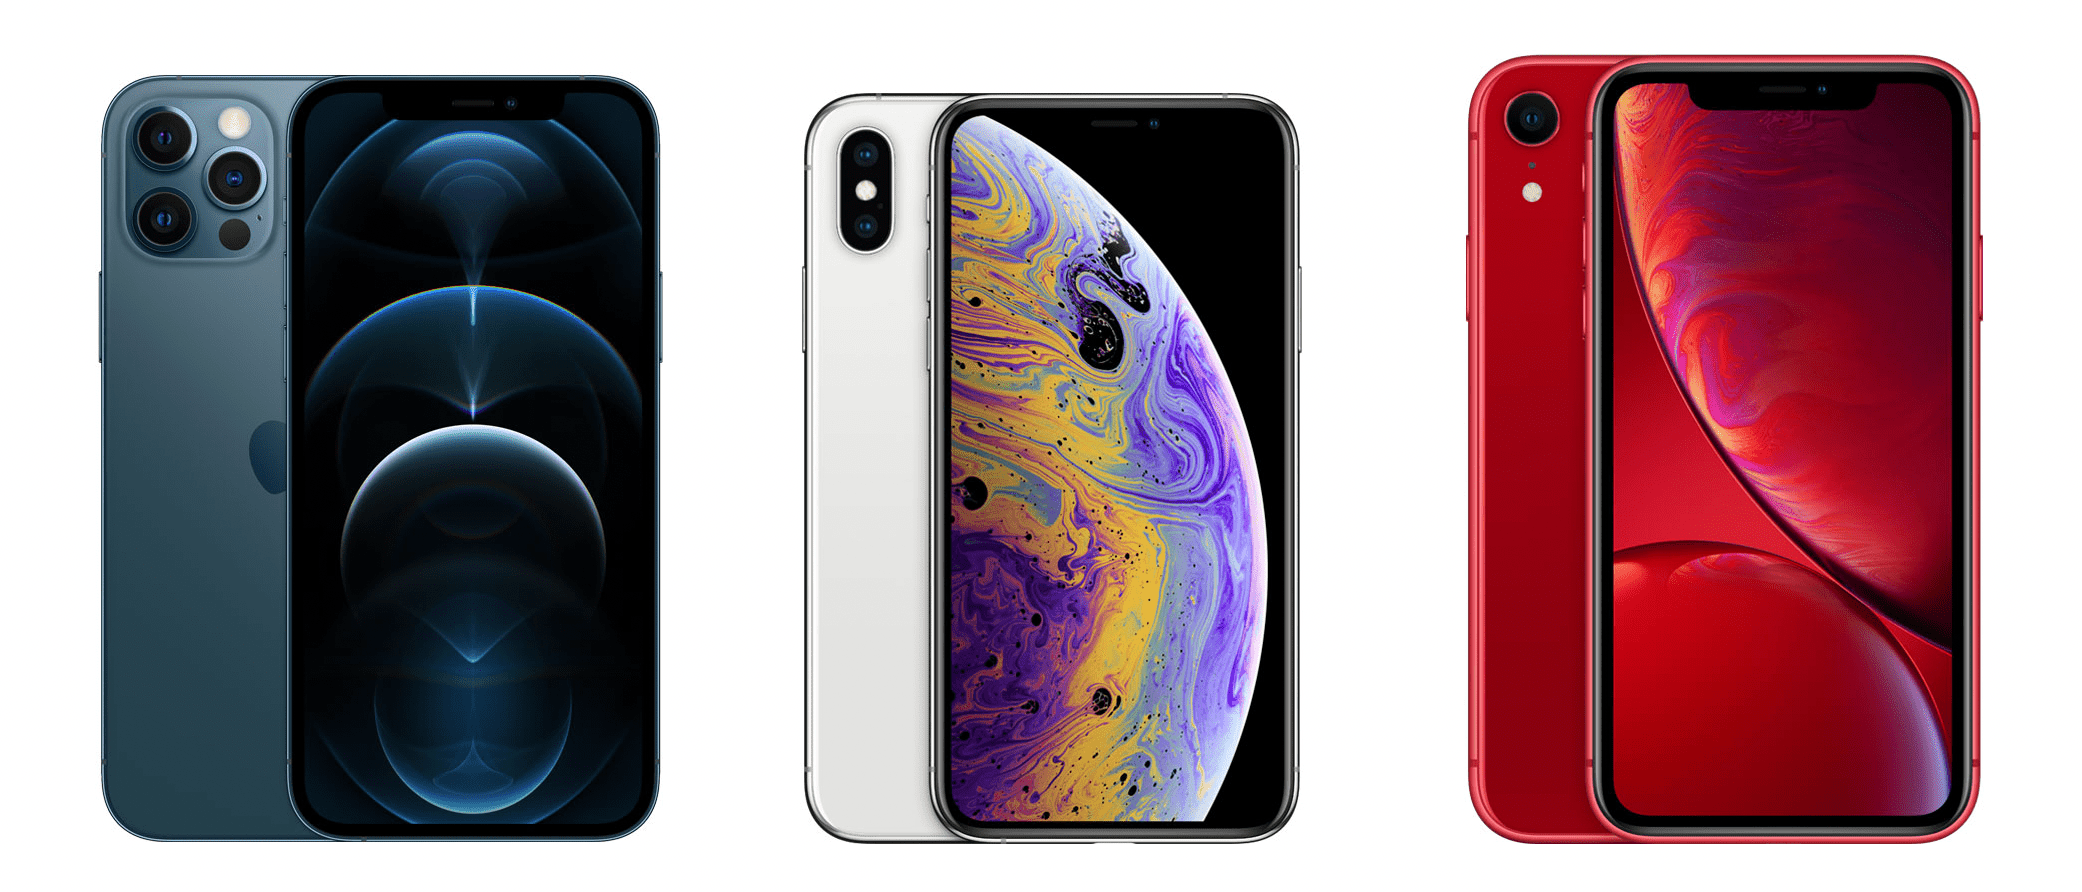 iPhone 12, iPhone XS, and iPhone XR side-by-side